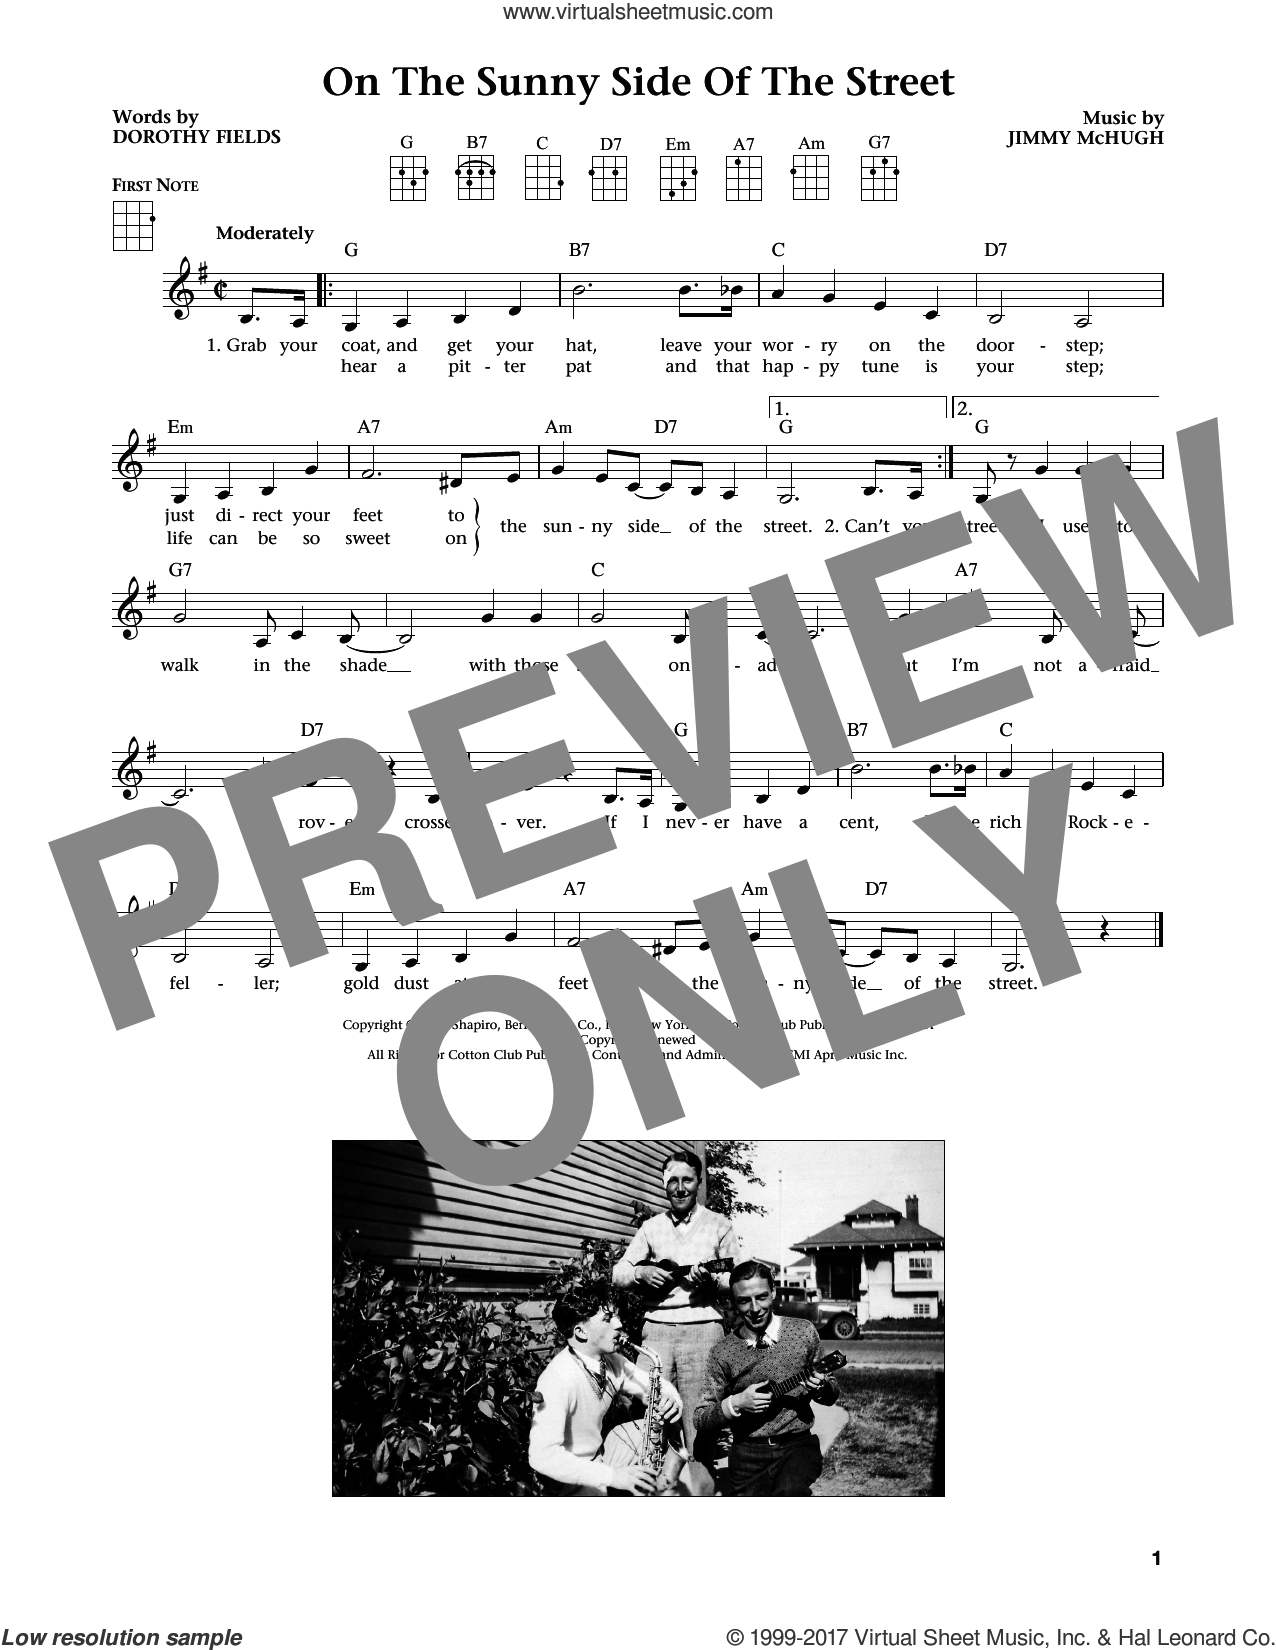 On The Sunny Side Of The Street (from The Daily Ukulele) (arr. Liz and Jim Beloff) sheet music for ukulele by Dorothy Fields, Jim Beloff, Liz Beloff and Jimmy McHugh, intermediate skill level